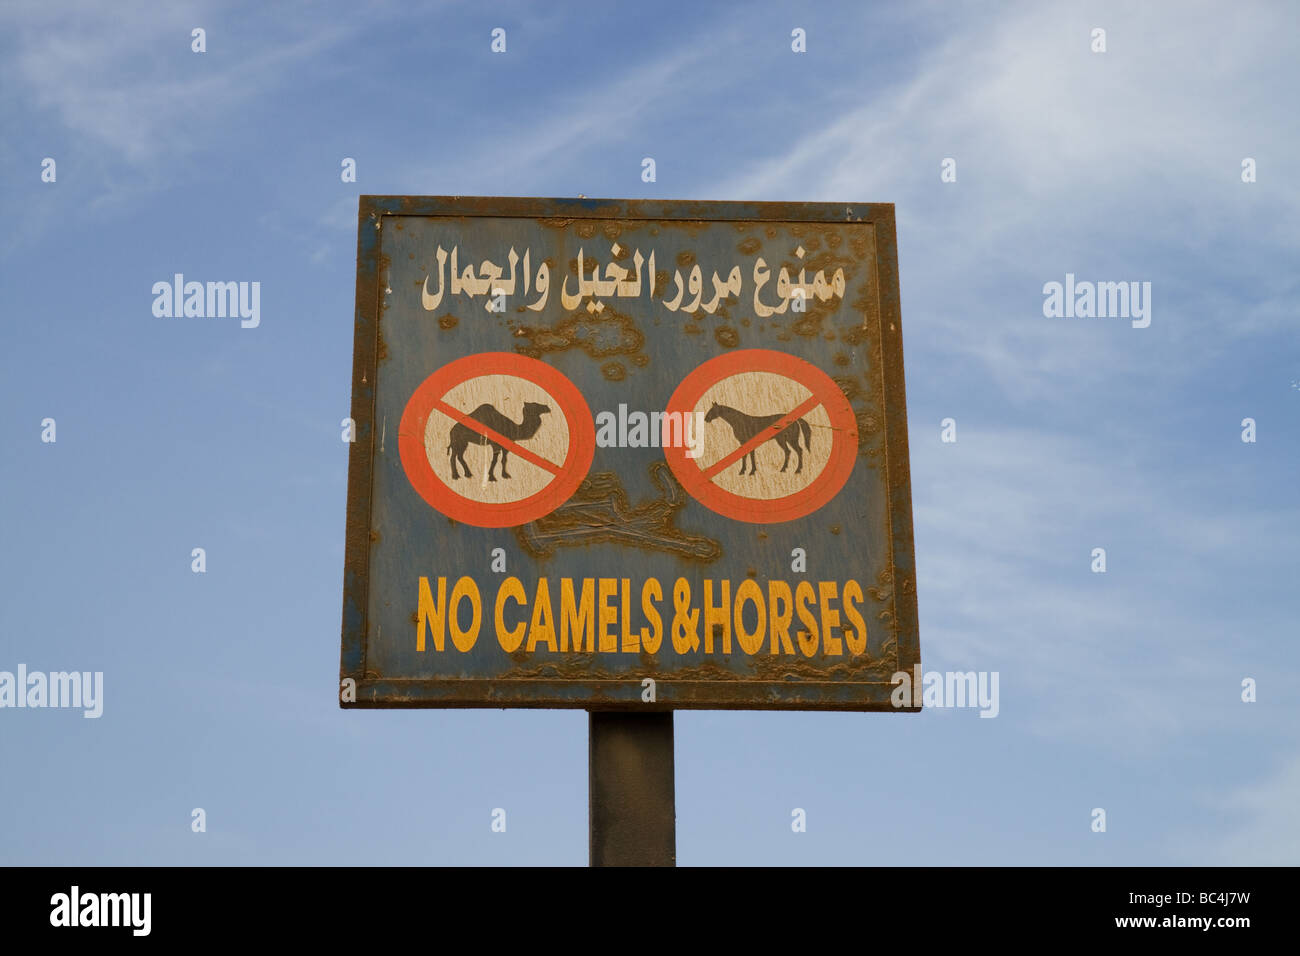 no camels or horses signal in Dahab, Gulf of Aqaba, South Sinai Peninsula, Egypt - Stock Image